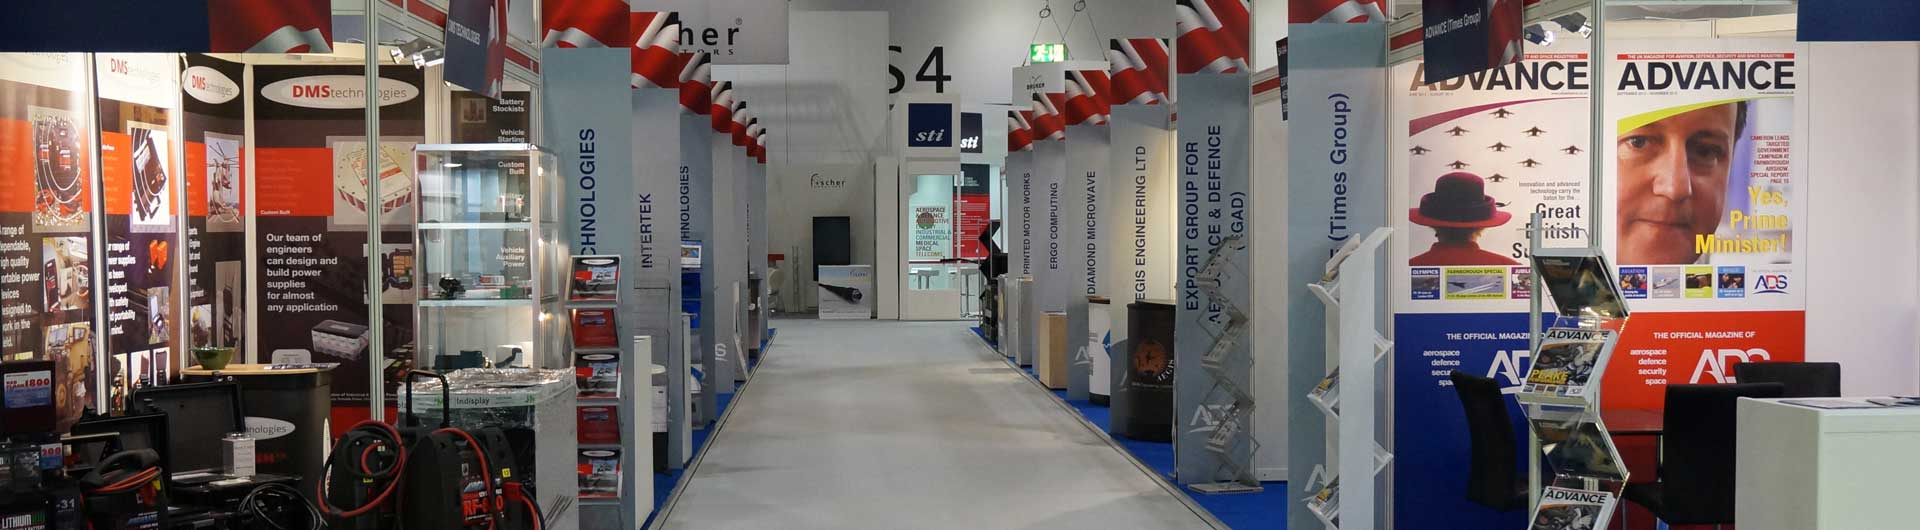 NF-x Installed Exhibition Stand  Image